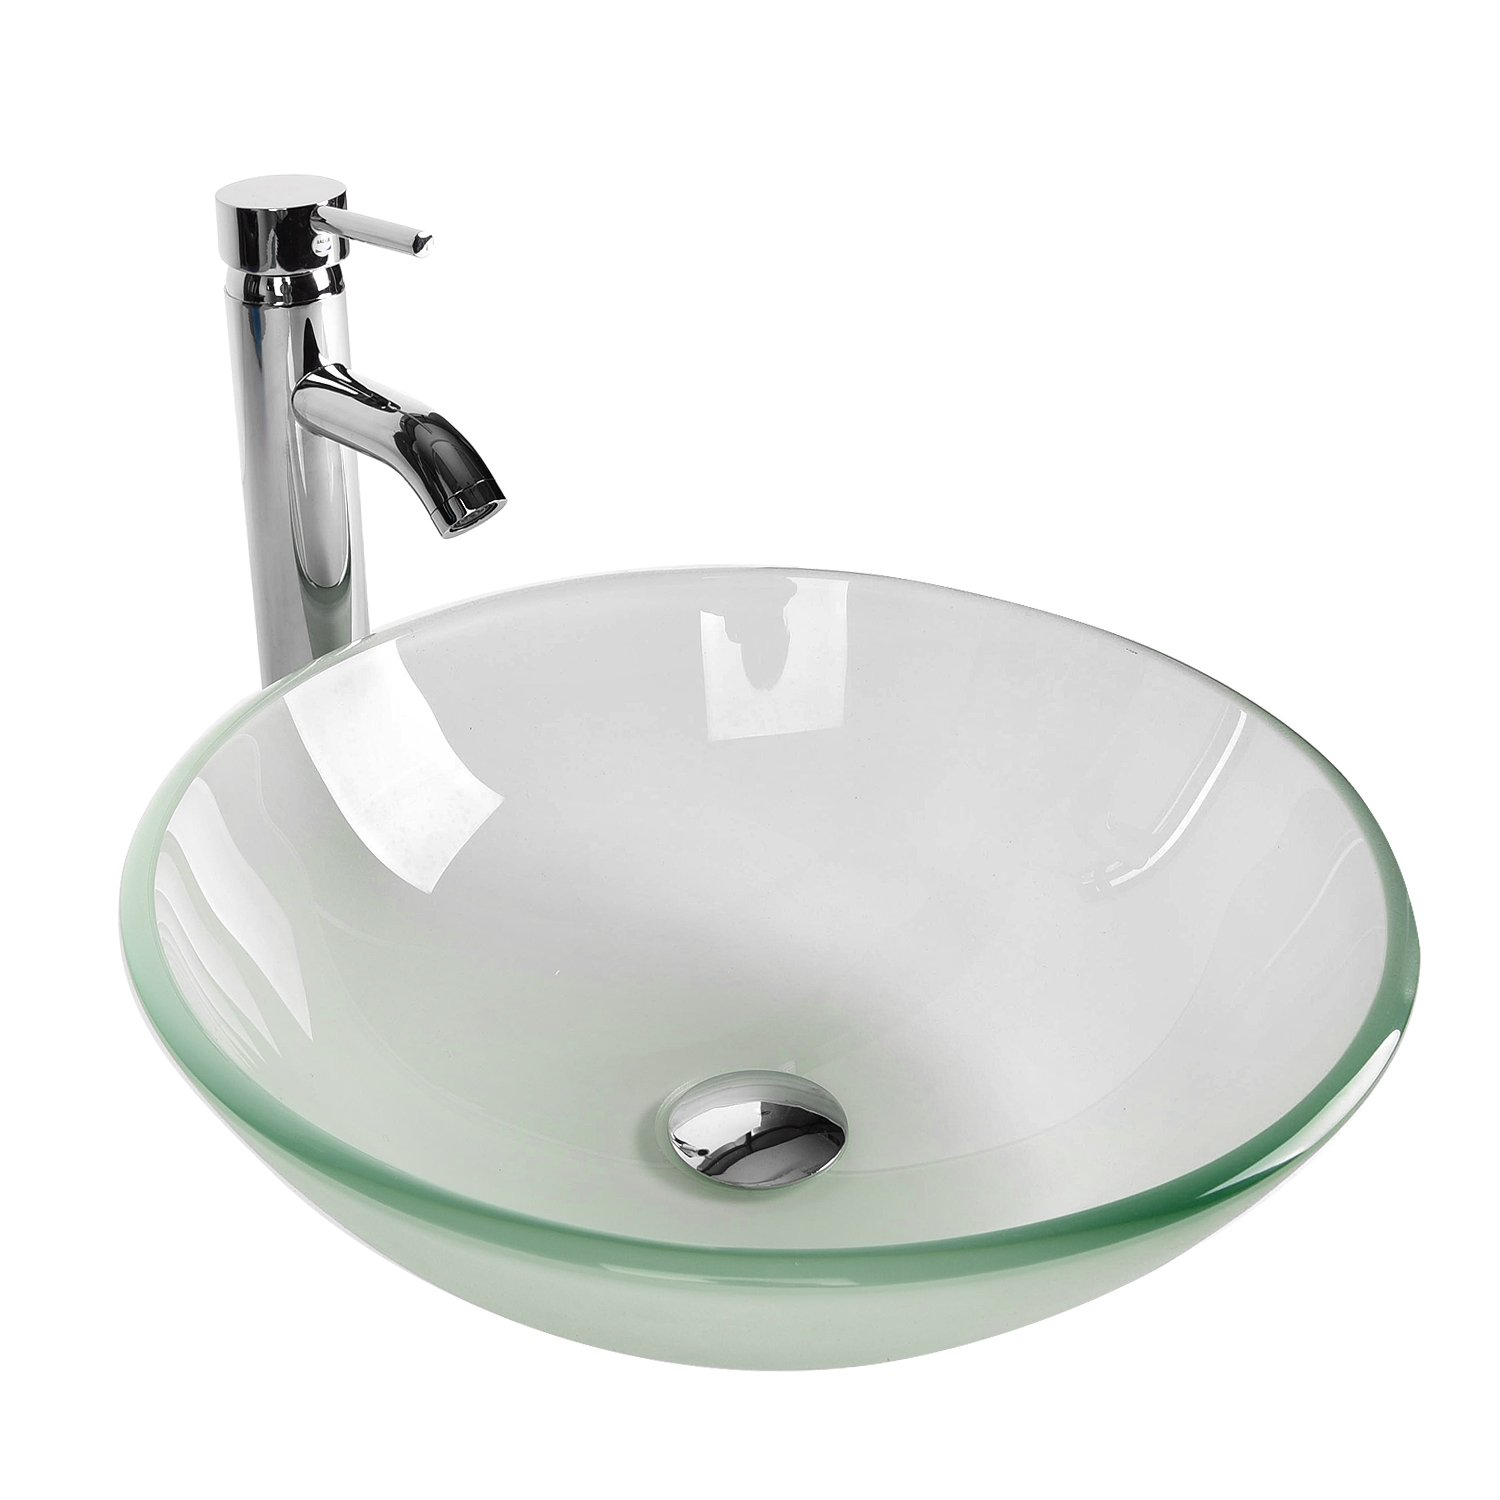 Bathroom Vessel Sinks Faucet Combo Modern Frosted Tempered Glass Round Single Hole Lavatory Chrome Brass Free Standing Above Counter 16.5 inch 1.5GPM 1/2'' & 3/8'' (Natural Frosted) by Elecwish